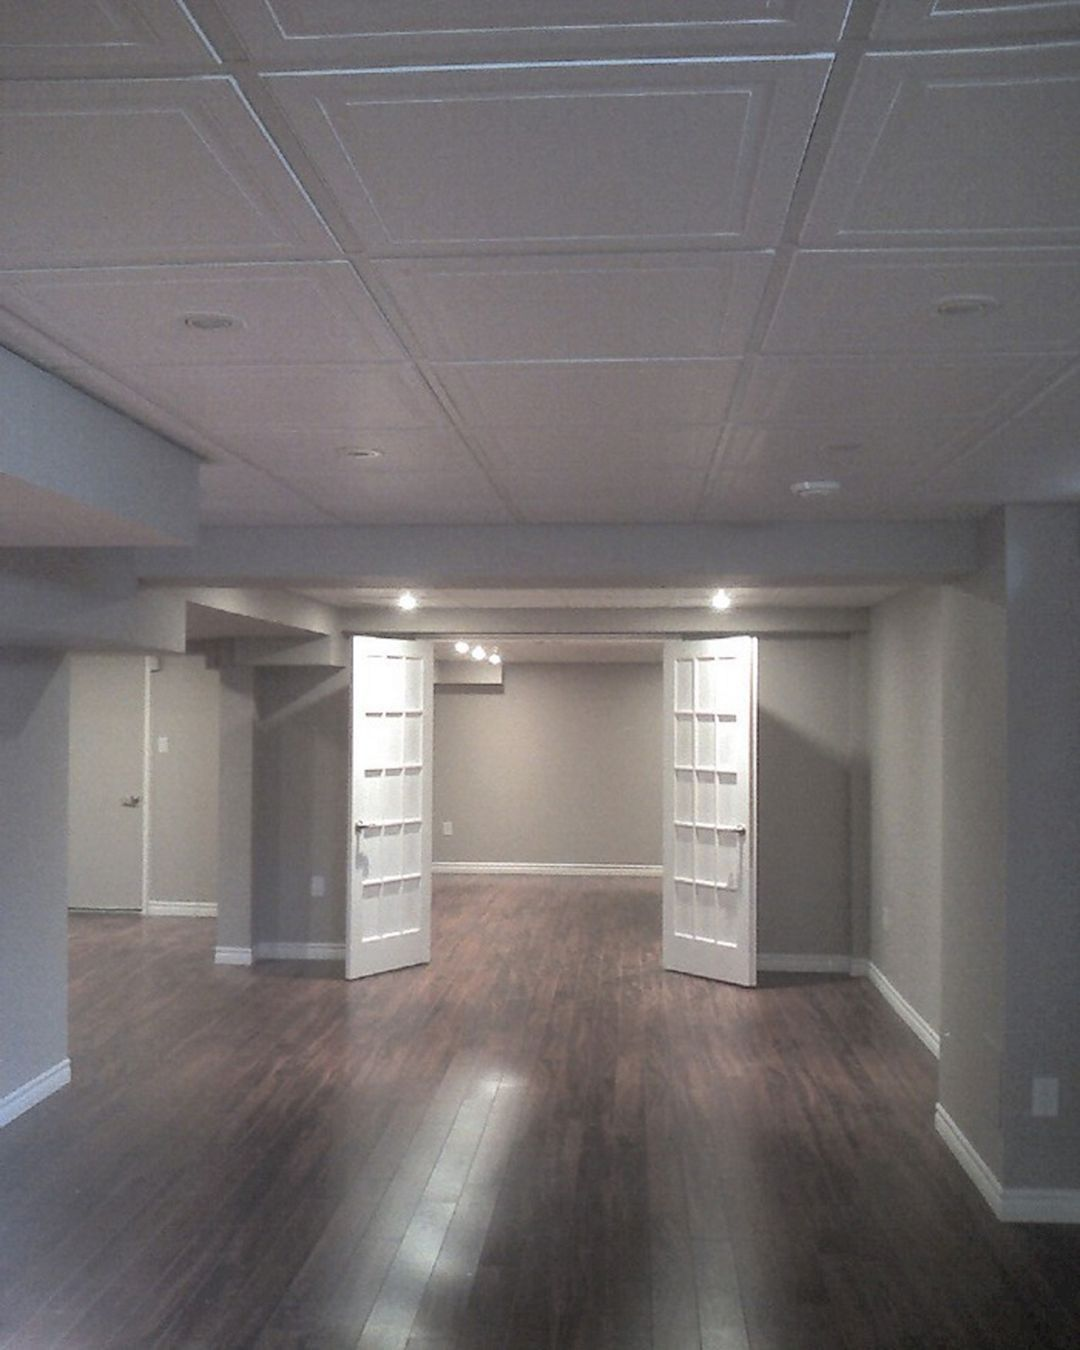 Two Bedroom Apartment Oshawa: Awesome Basement Apartment Ideas You Have To Know 55 Best